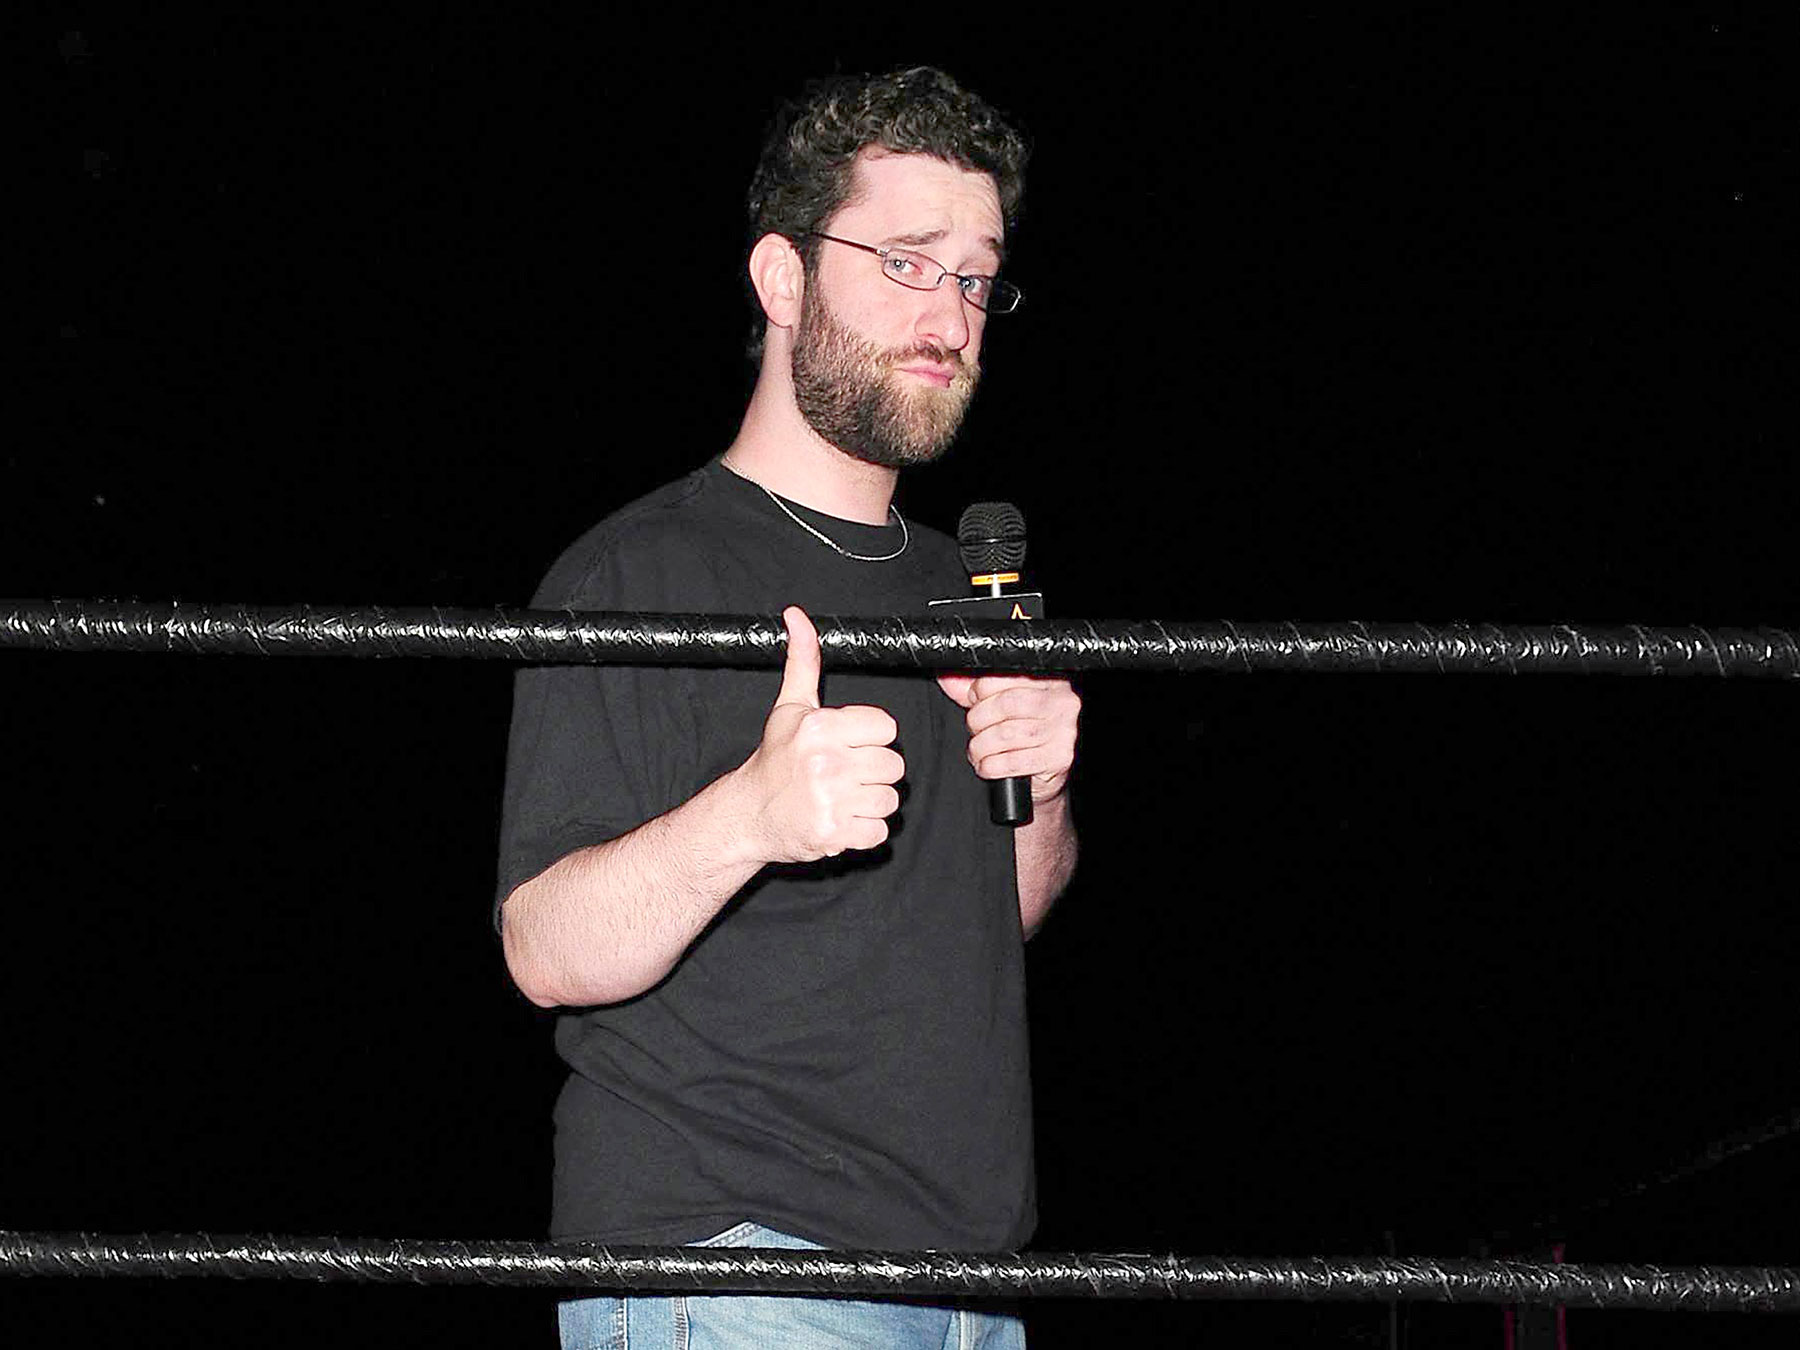 """**FILE PHOTO** Dustin Diamond Has Passed Away at 44 From Stage 4 Lung Cancer. FORT LAUDERDALE, FL - JUNE 04 : Dustin """"Screech"""" Diamond attend Celebrity Boxing Match Featuring Michael Lohan and Frank Sorrentino at The Ocean Manor on June 4, 2011 in Fort Lauderdale, Florida. (photo by: MPI10/MediaPunch Inc.) /IPX"""